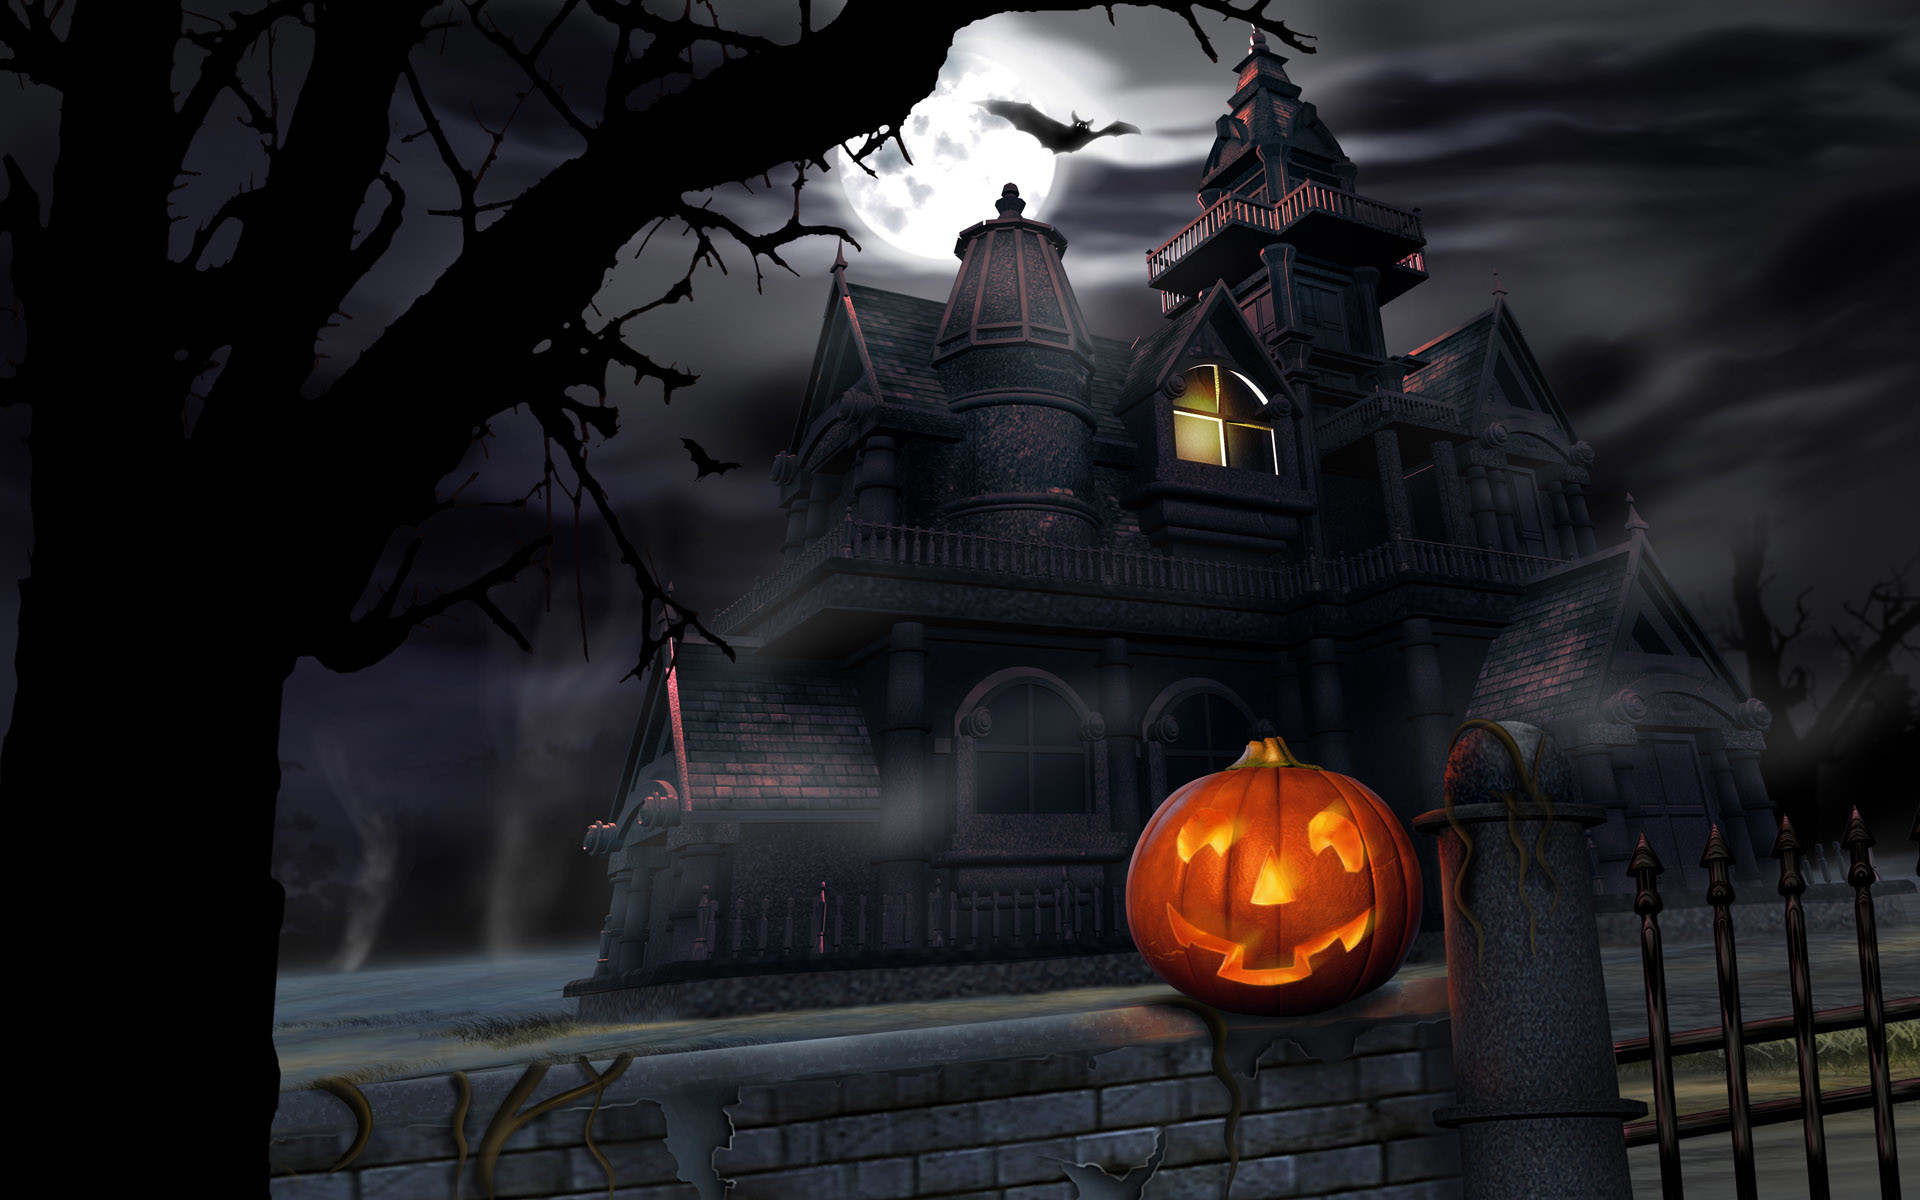 Live Halloween Wallpaper for Desktop 62 images 1920x1200